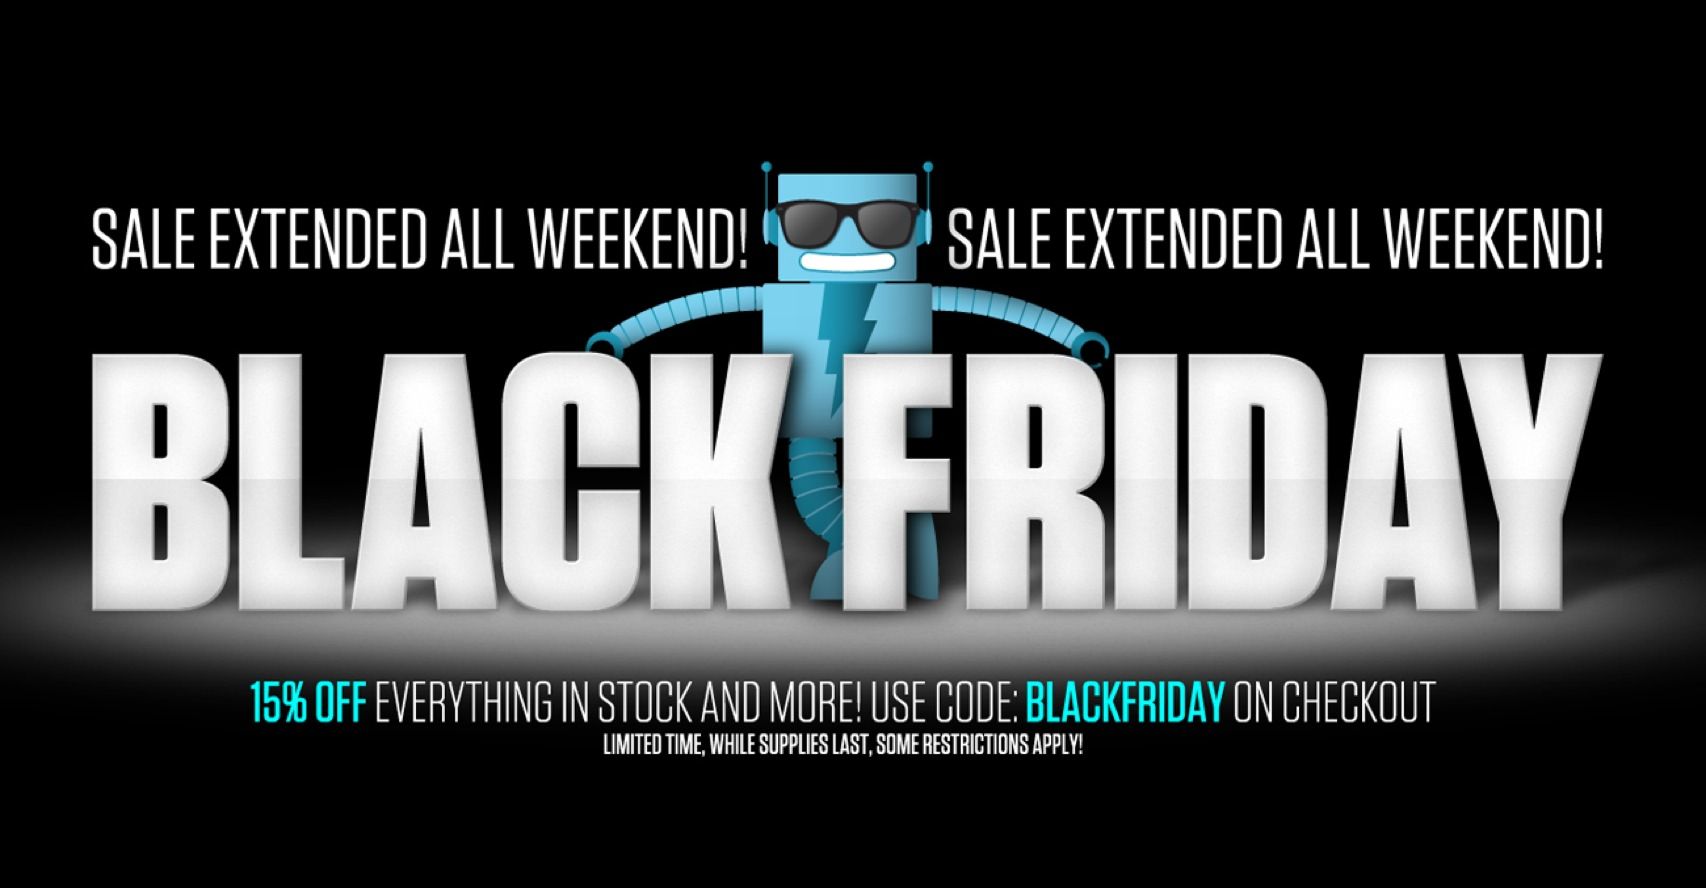 Adafruit Blackfriday Googleplus-1